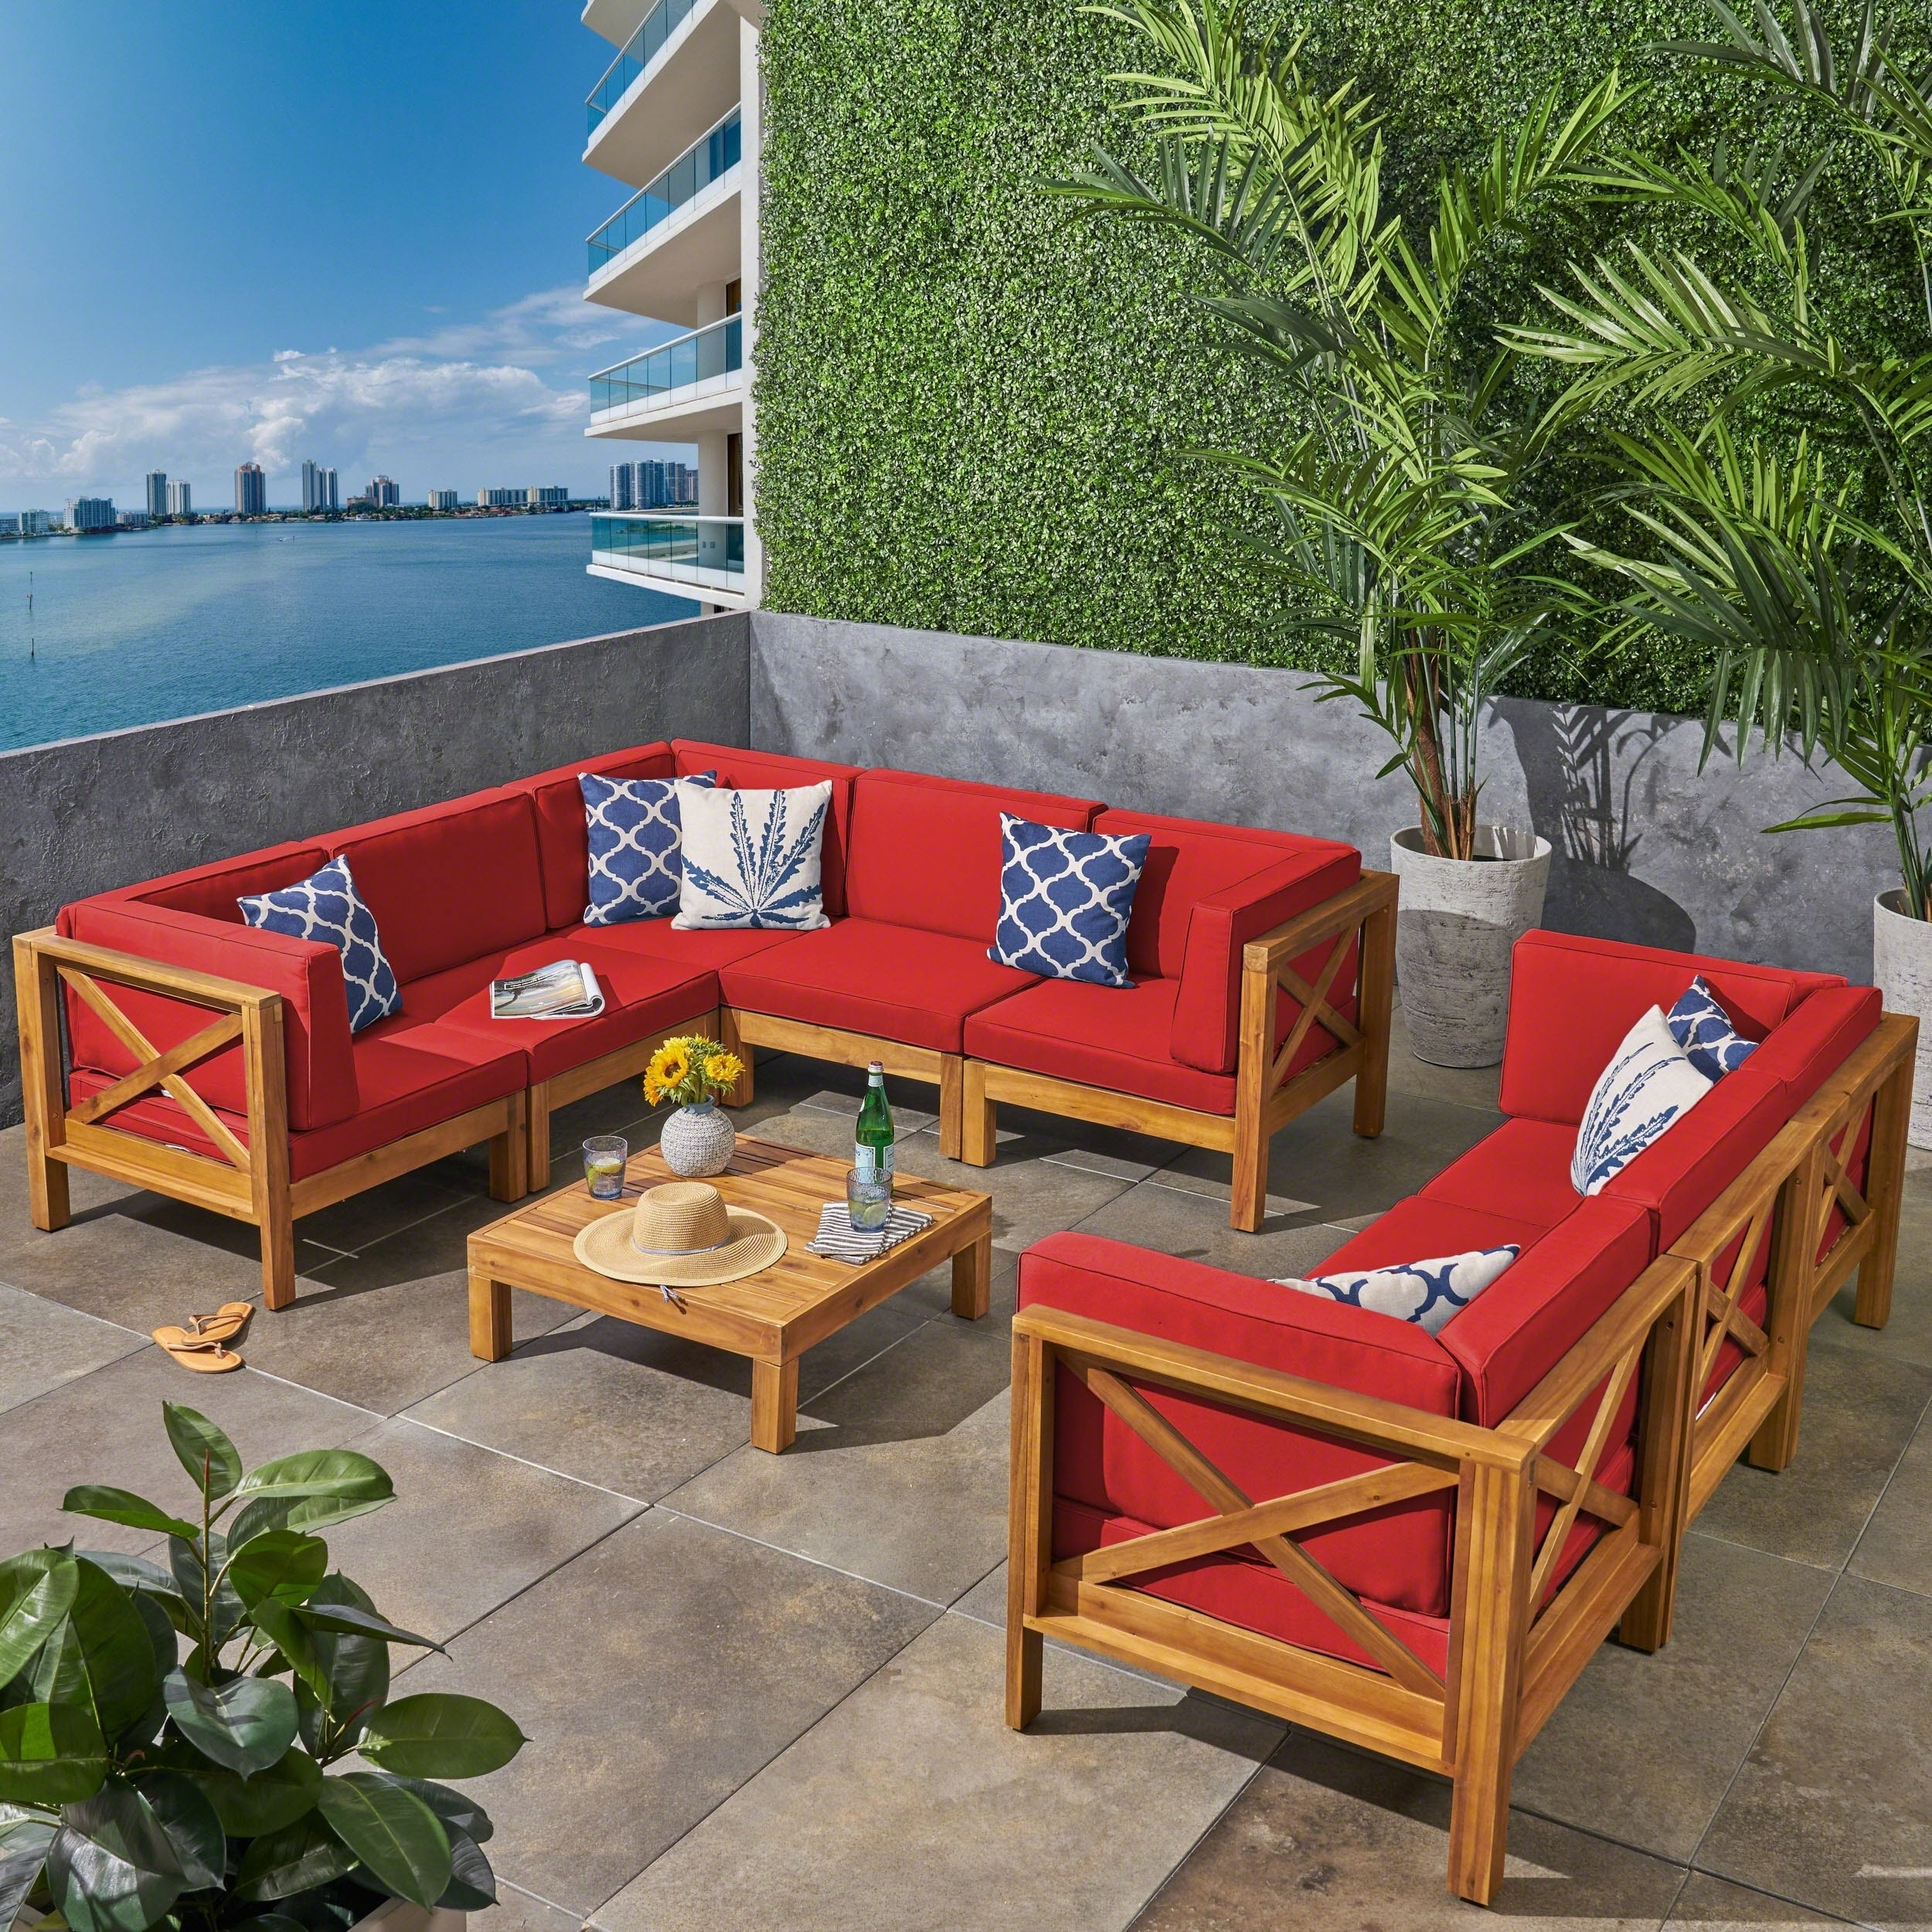 Brava Outdoor 9 Piece Acacia Wood Sectional Sofa Set With Coffee Table By